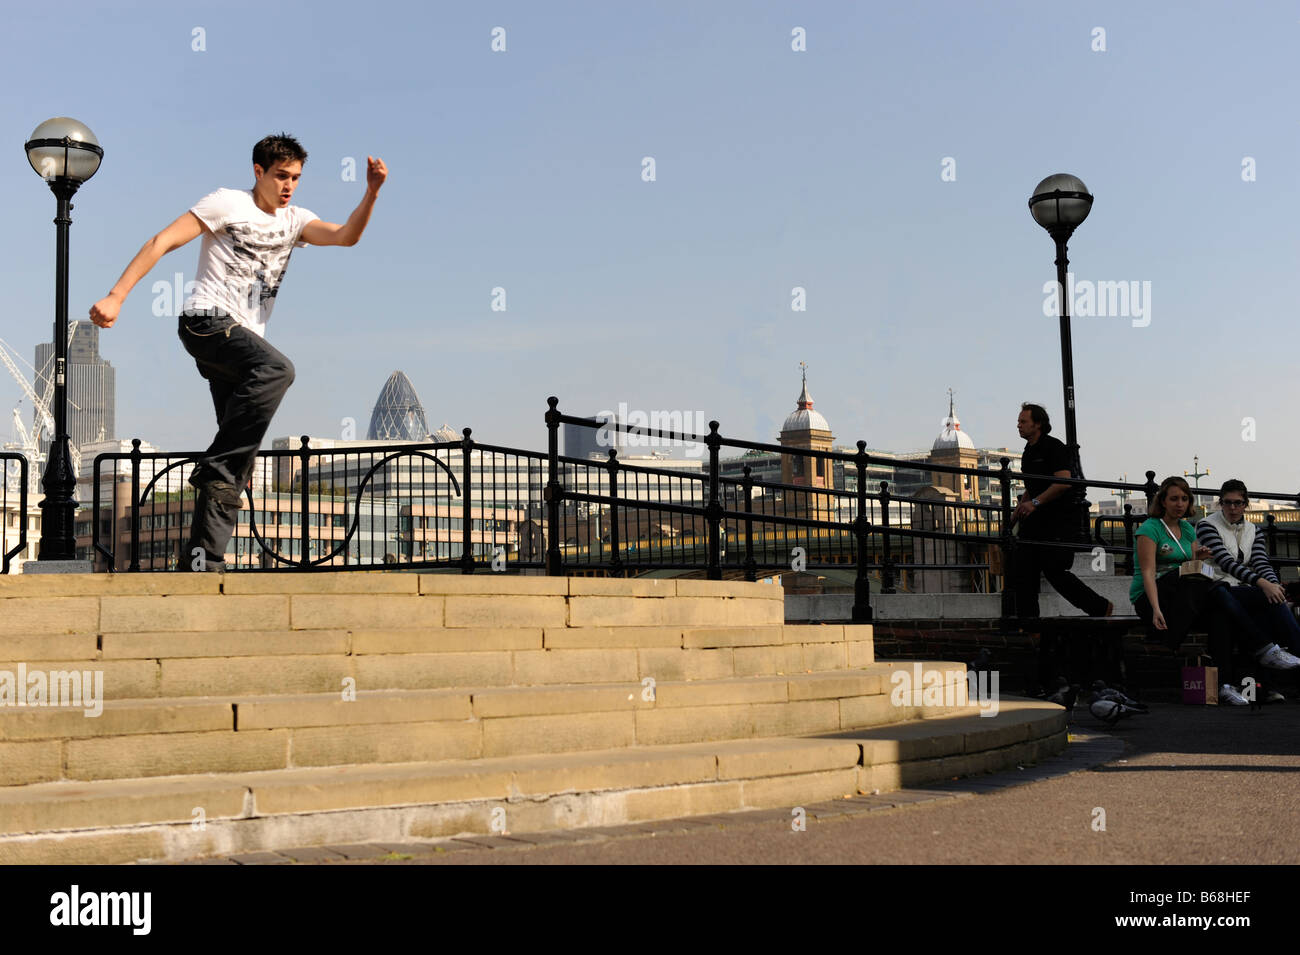 Running over stairs - Stock Image